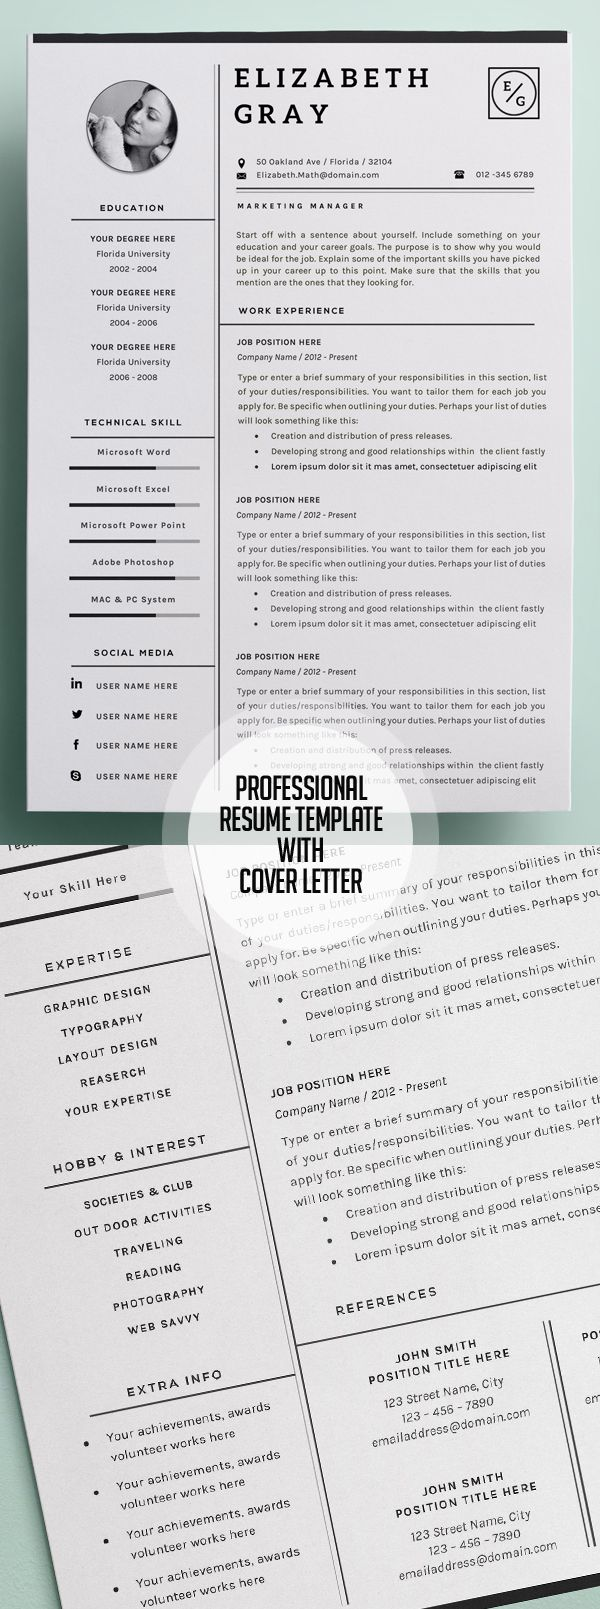 Opposenewapstandardsus  Ravishing  Resume Ideas On Pinterest  Resume Resume Templates And  With Hot Professional And Modern Resume Template With Page Cover Cvtemplate With Attractive Two Types Of Resumes Also Objective To Put On A Resume In Addition High School Sample Resume And Caregiver Job Description For Resume As Well As Resume After College Additionally Making A Resume In Word From Pinterestcom With Opposenewapstandardsus  Hot  Resume Ideas On Pinterest  Resume Resume Templates And  With Attractive Professional And Modern Resume Template With Page Cover Cvtemplate And Ravishing Two Types Of Resumes Also Objective To Put On A Resume In Addition High School Sample Resume From Pinterestcom